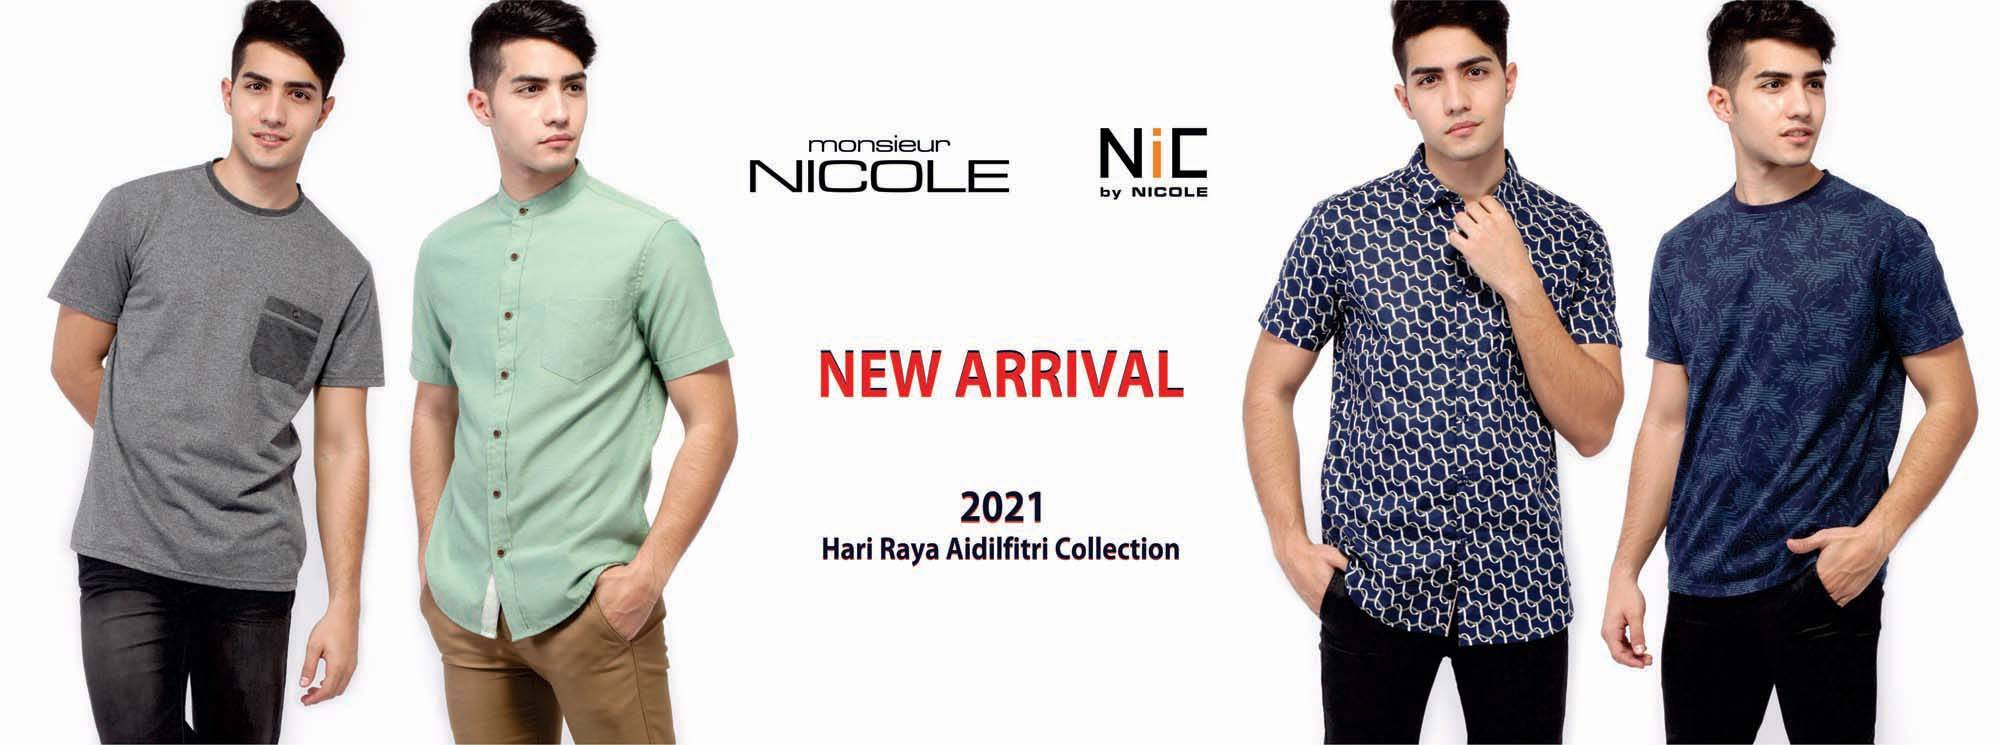 MEN'S WEAR NEW ARRIVAL